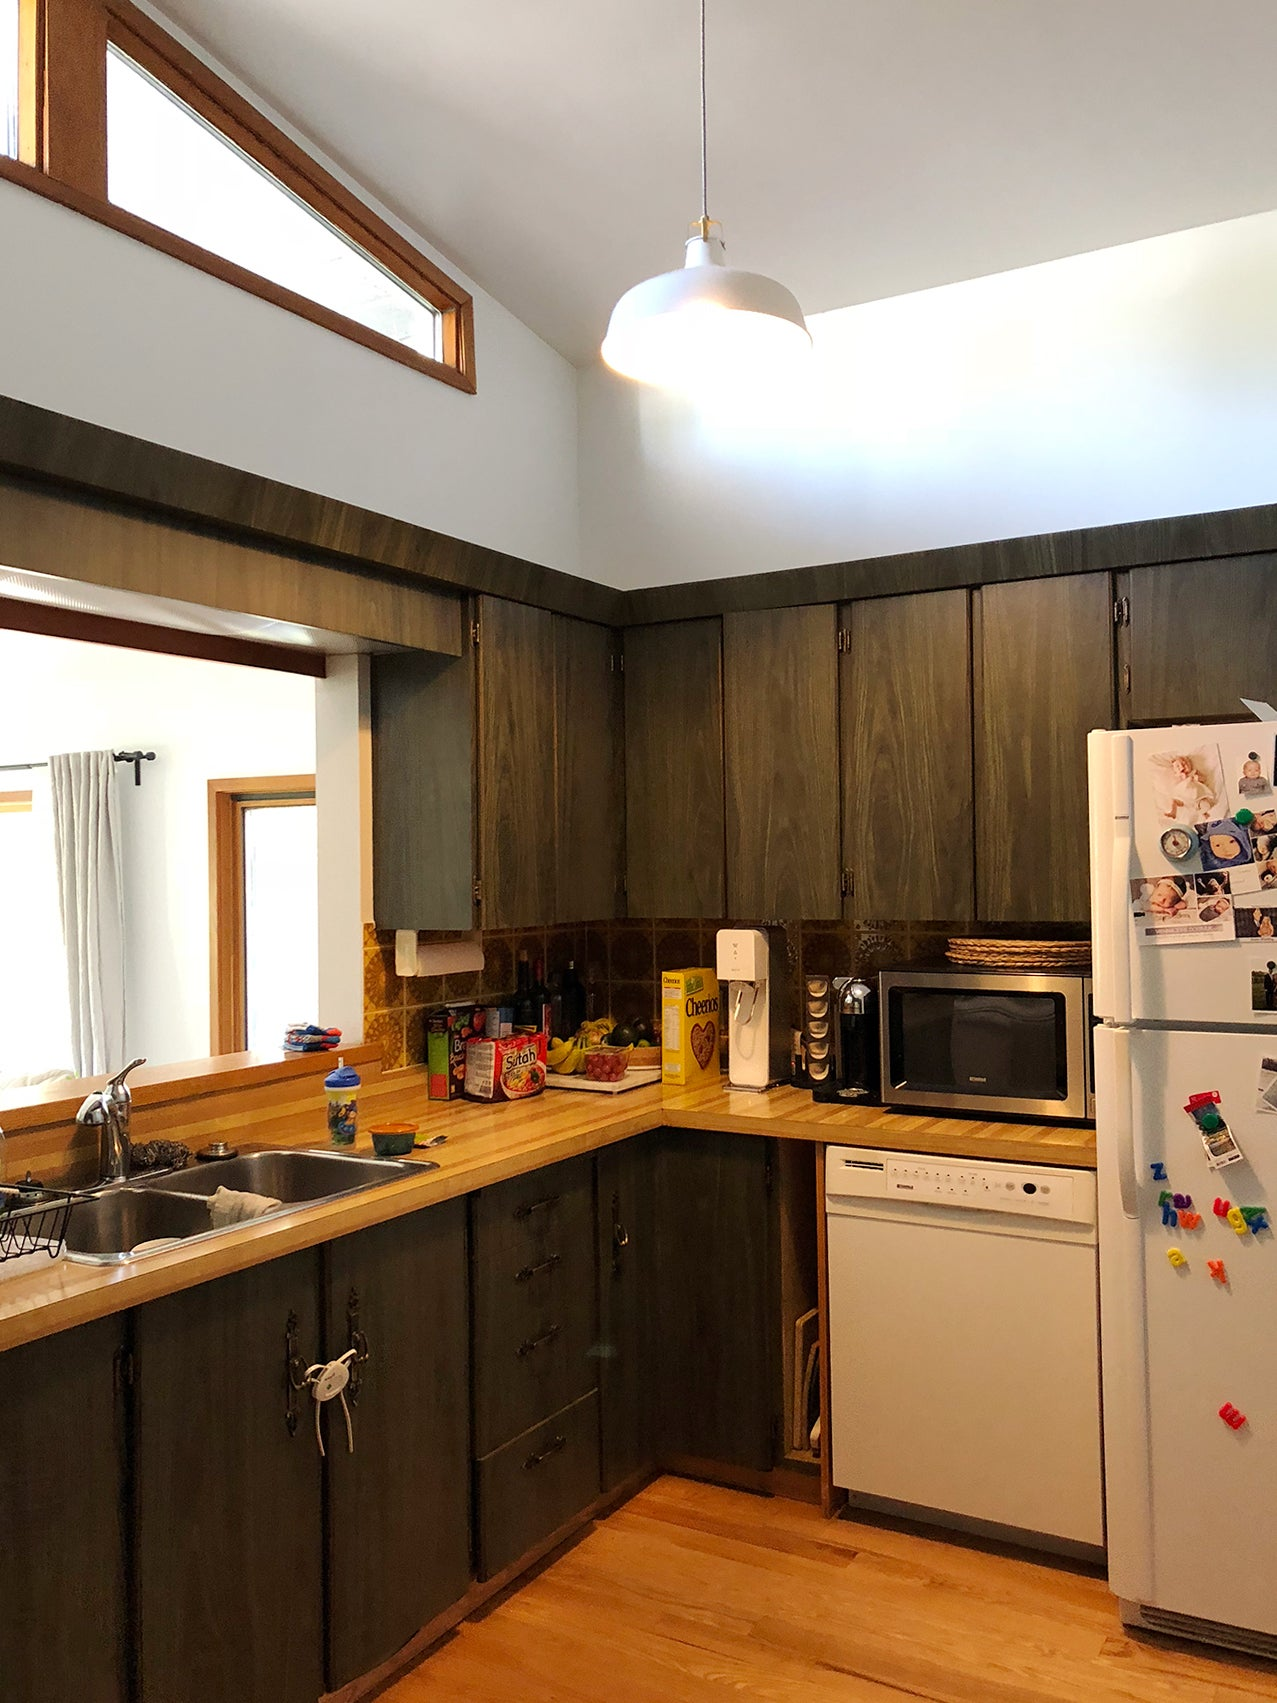 before image of dated kitchen